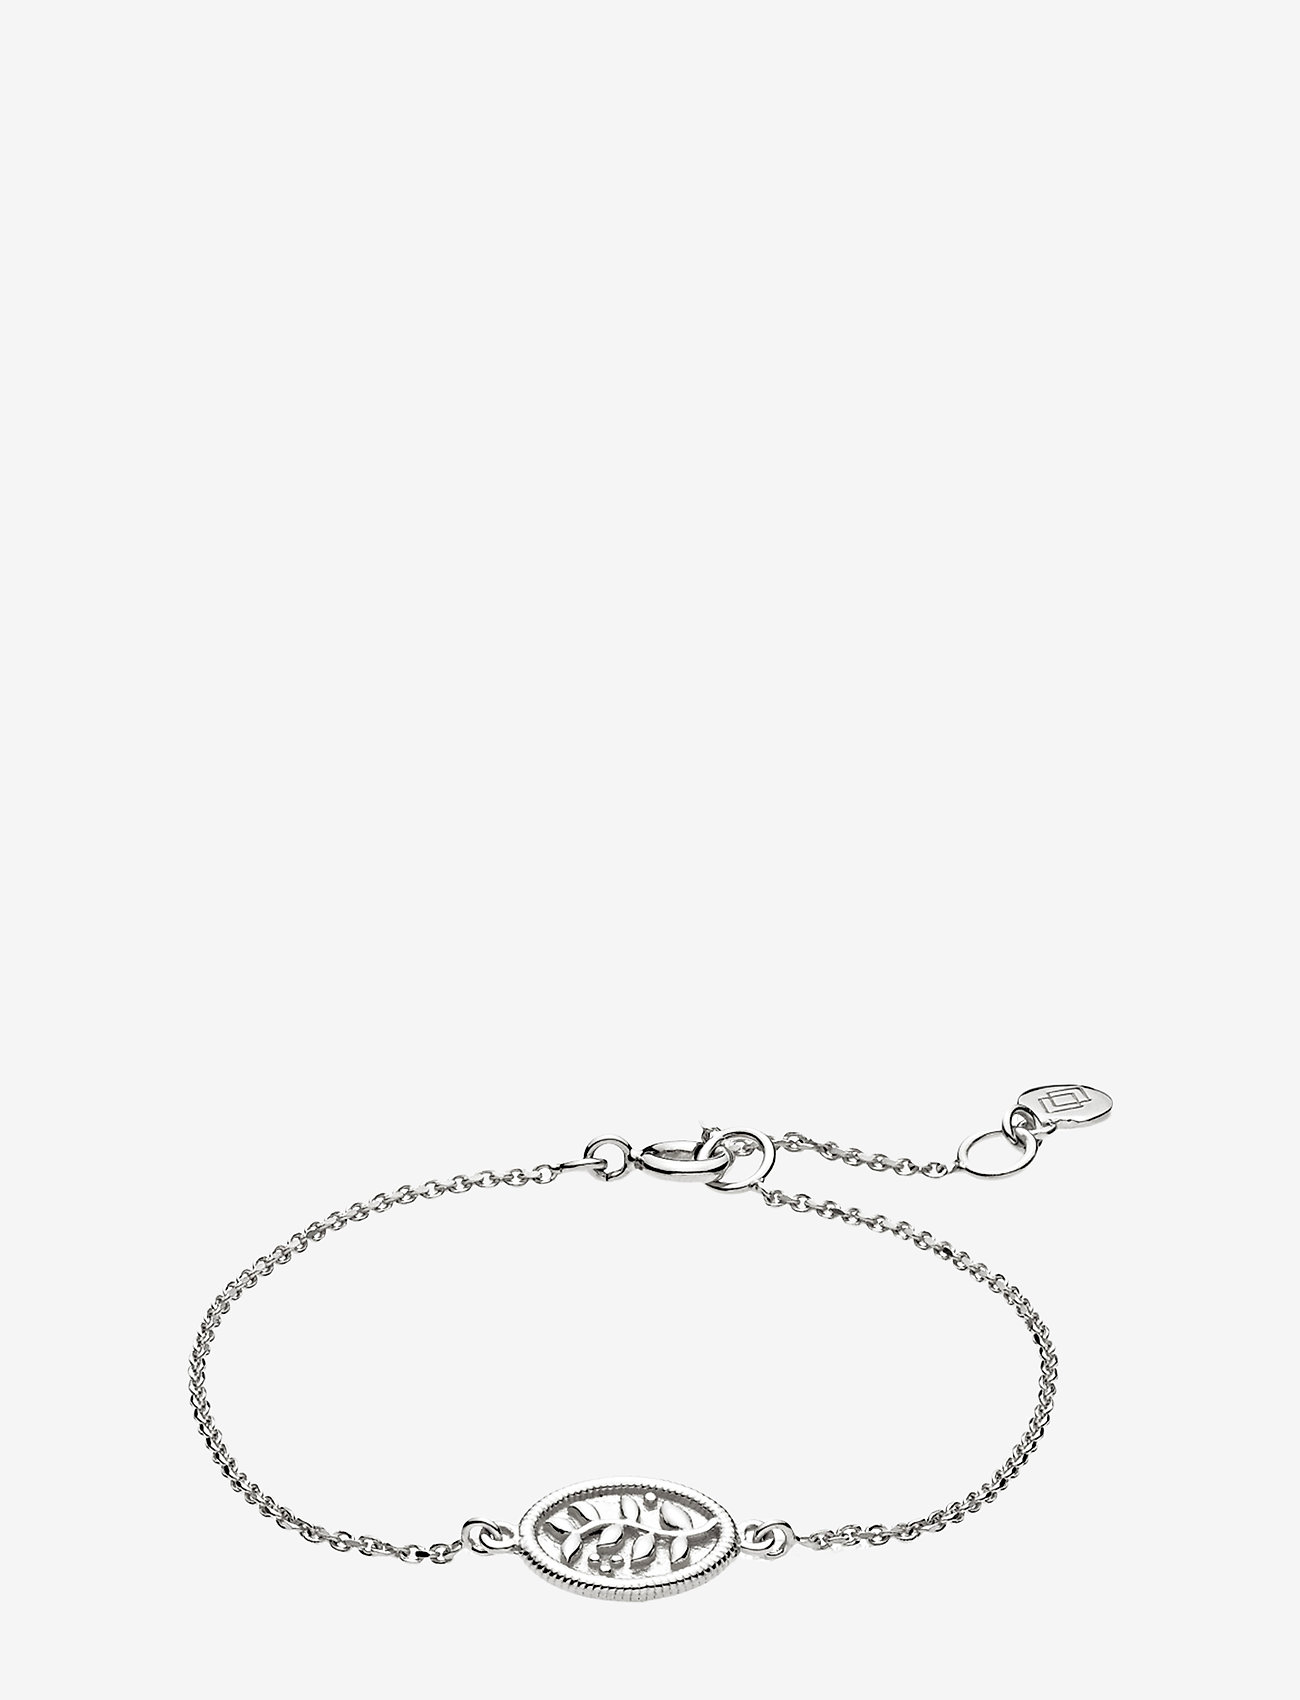 Izabel Camille - Anna - dainty - rhodium plated sterling silver - 0